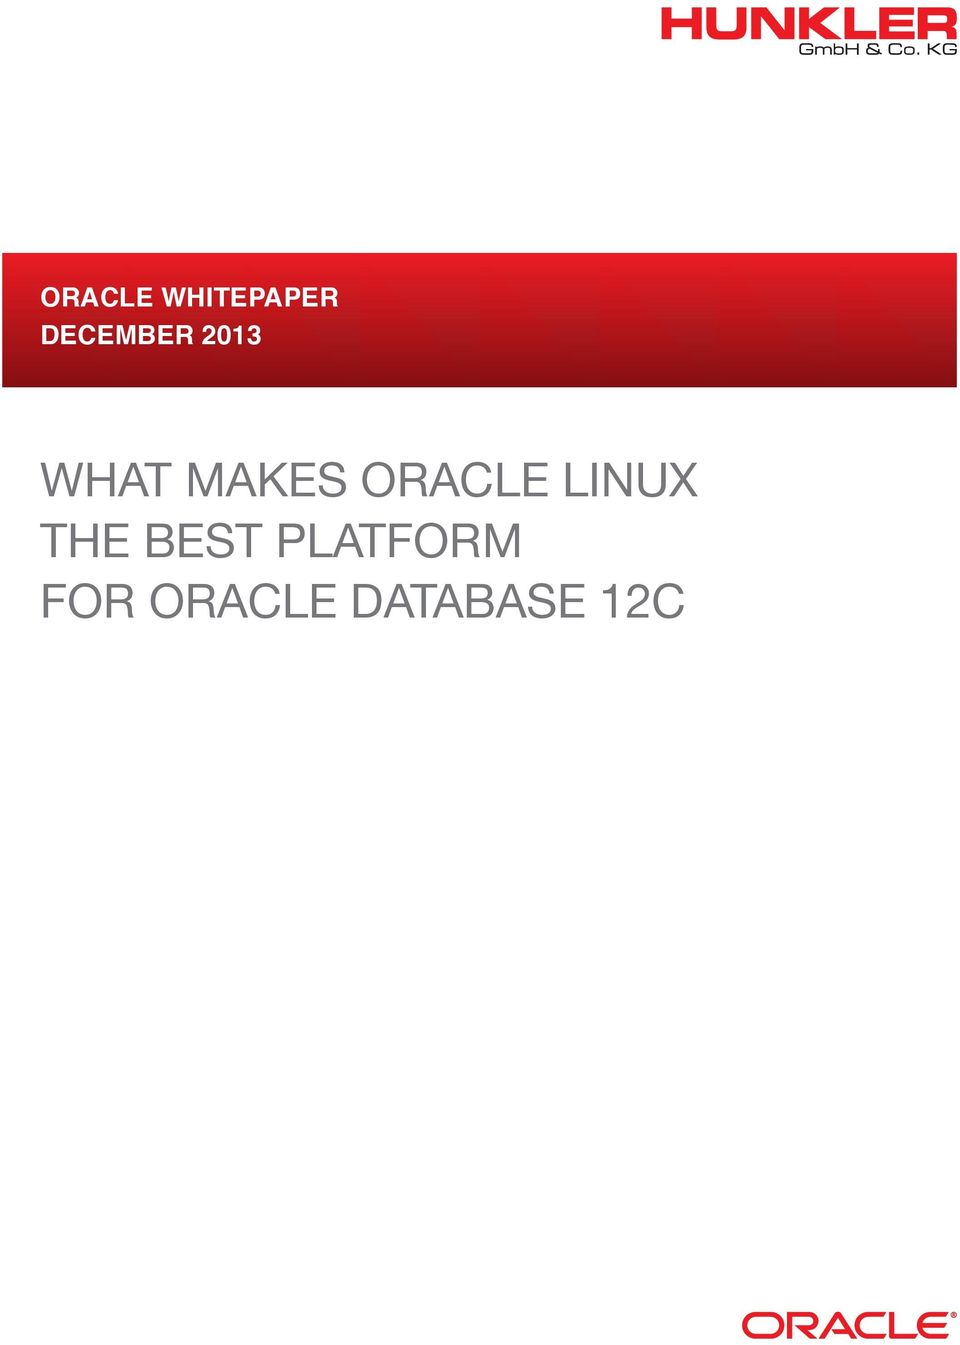 Oracle Linux the Best